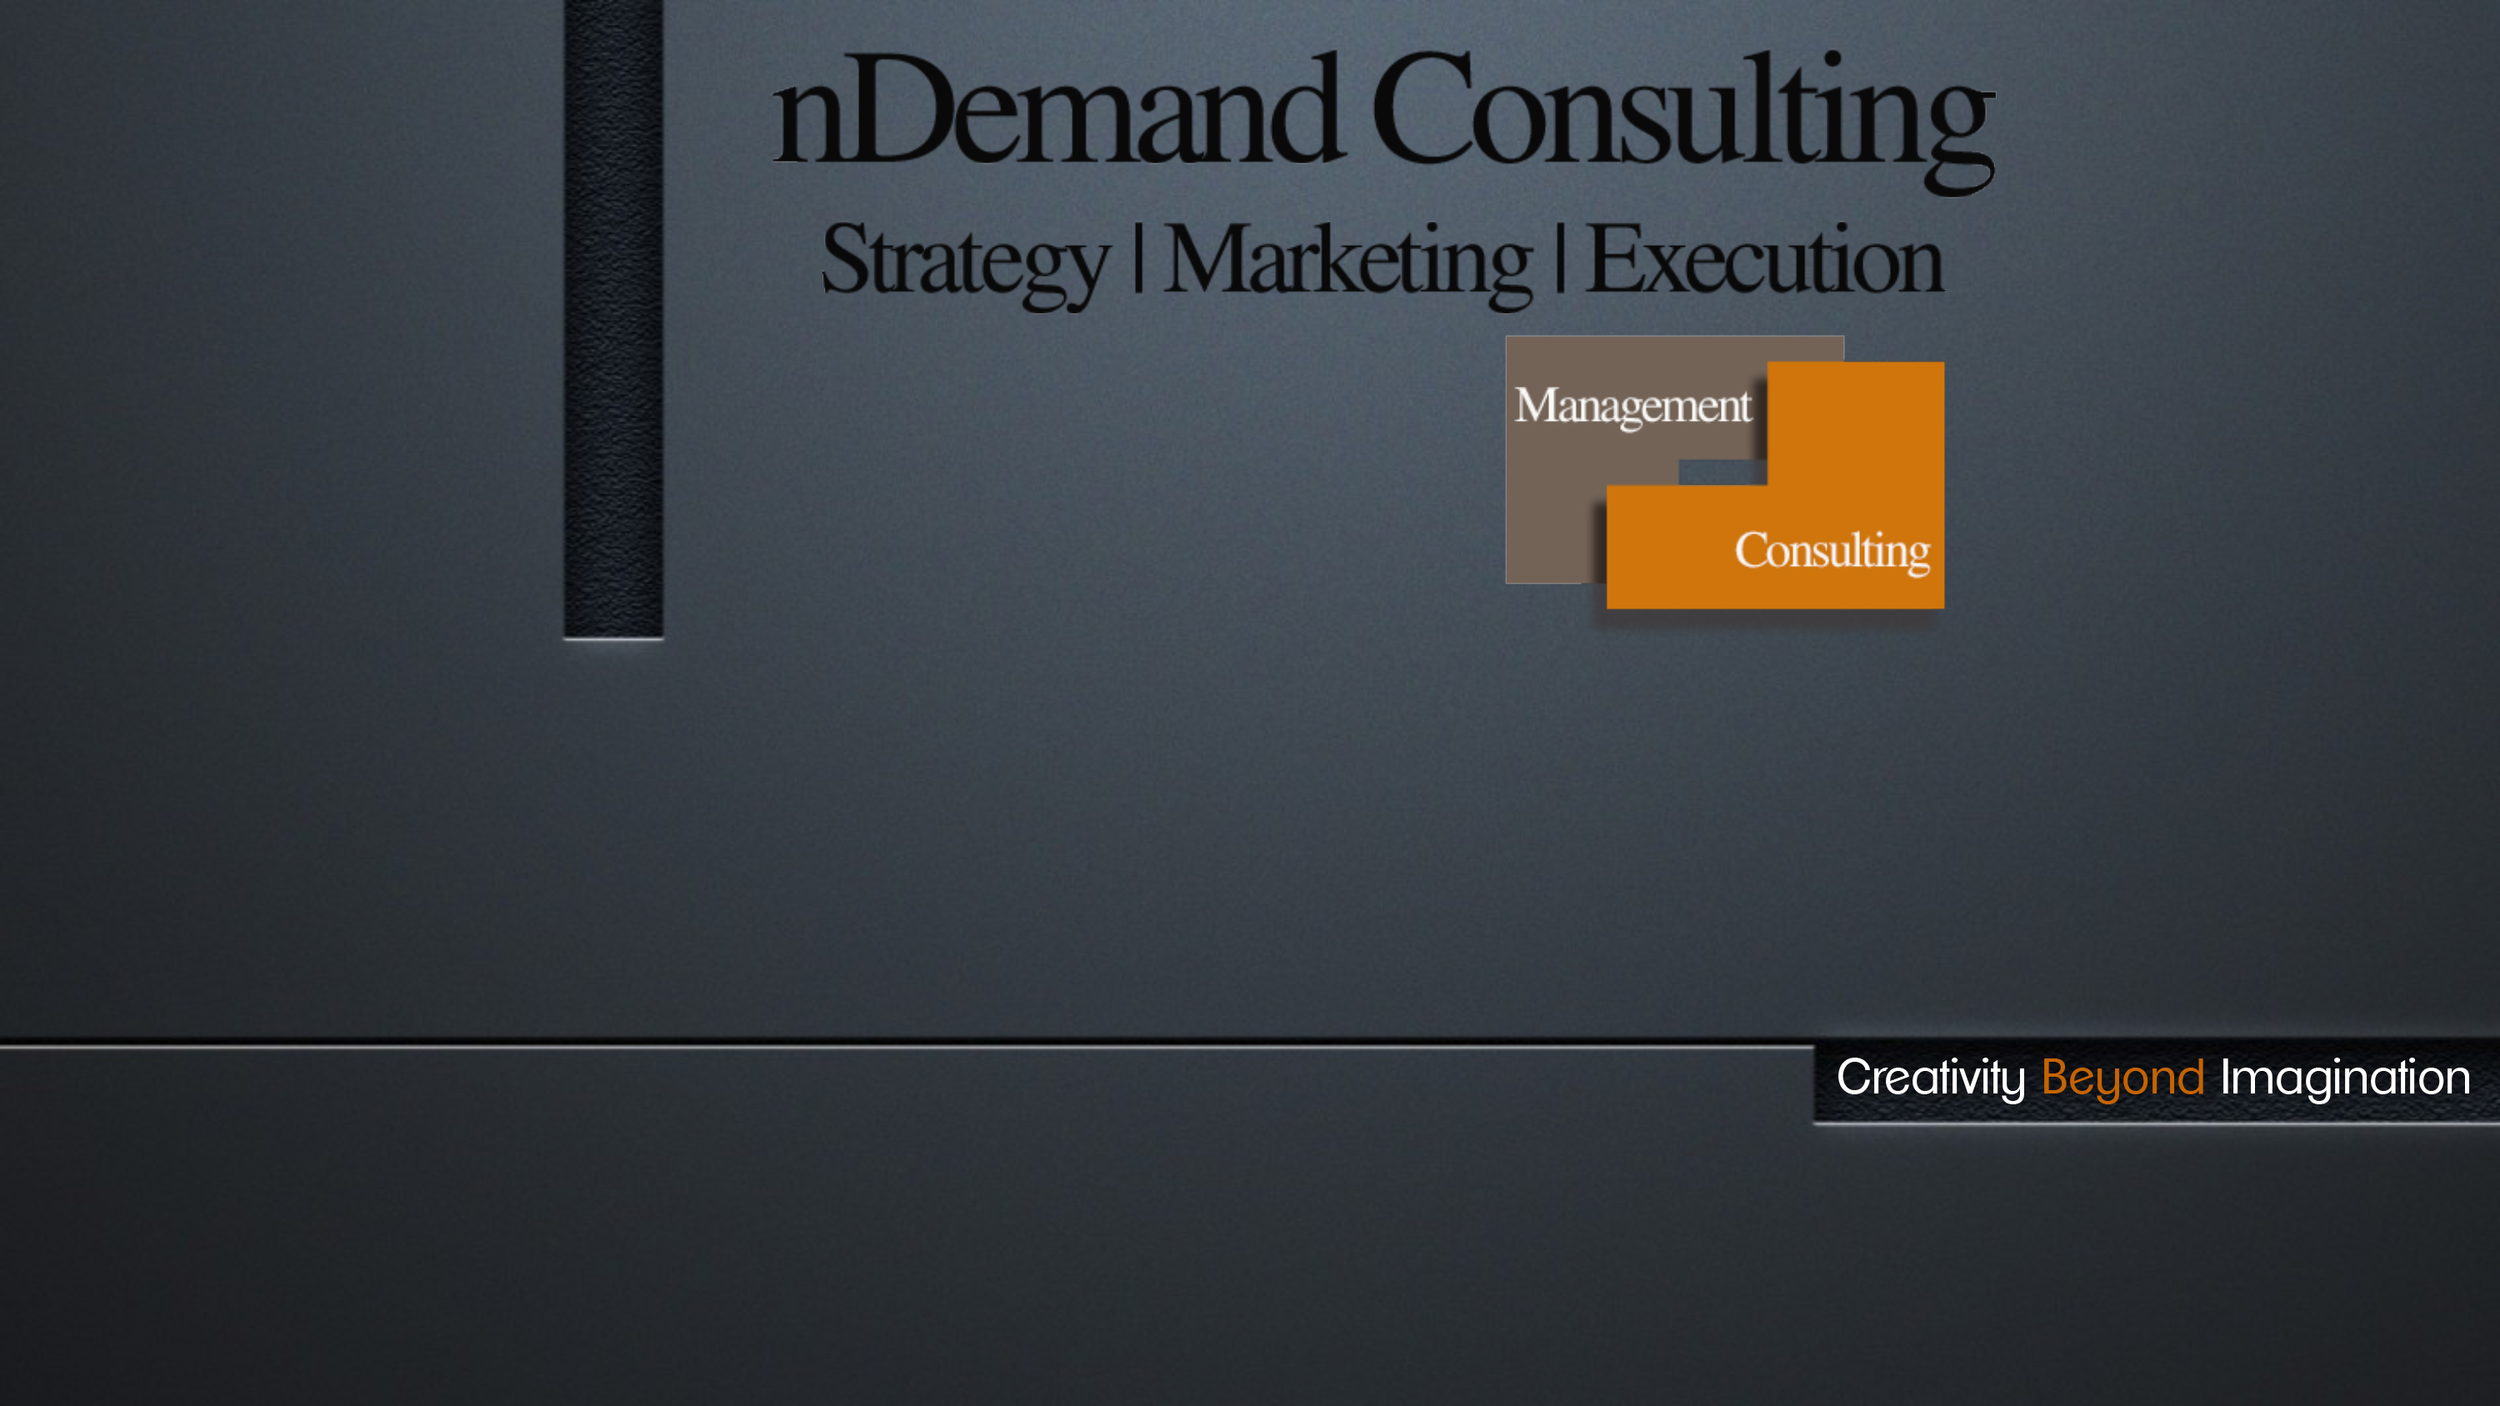 nDemand-Consulting_Rules-of-Engagement-1.jpg